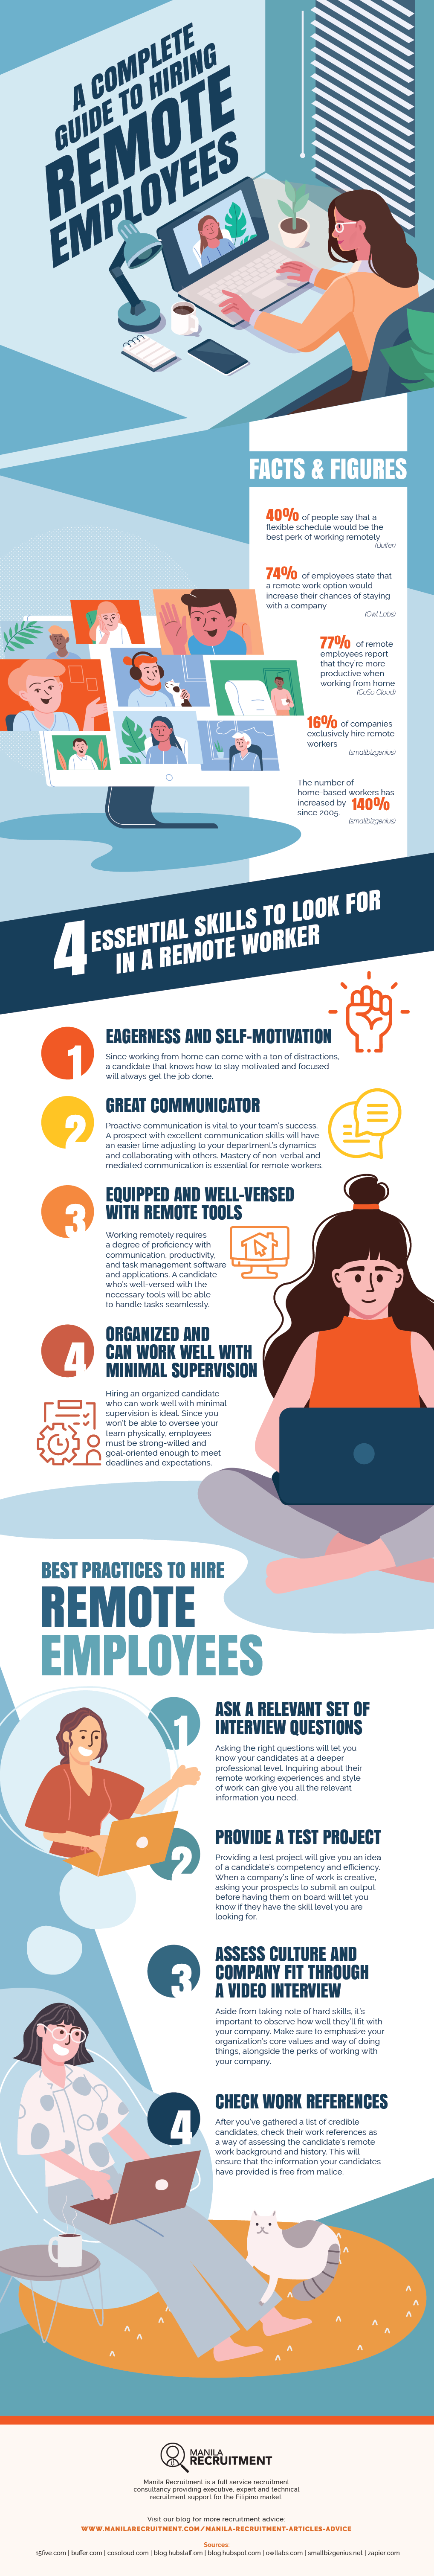 A Complete Guide to Hiring Remote Employees